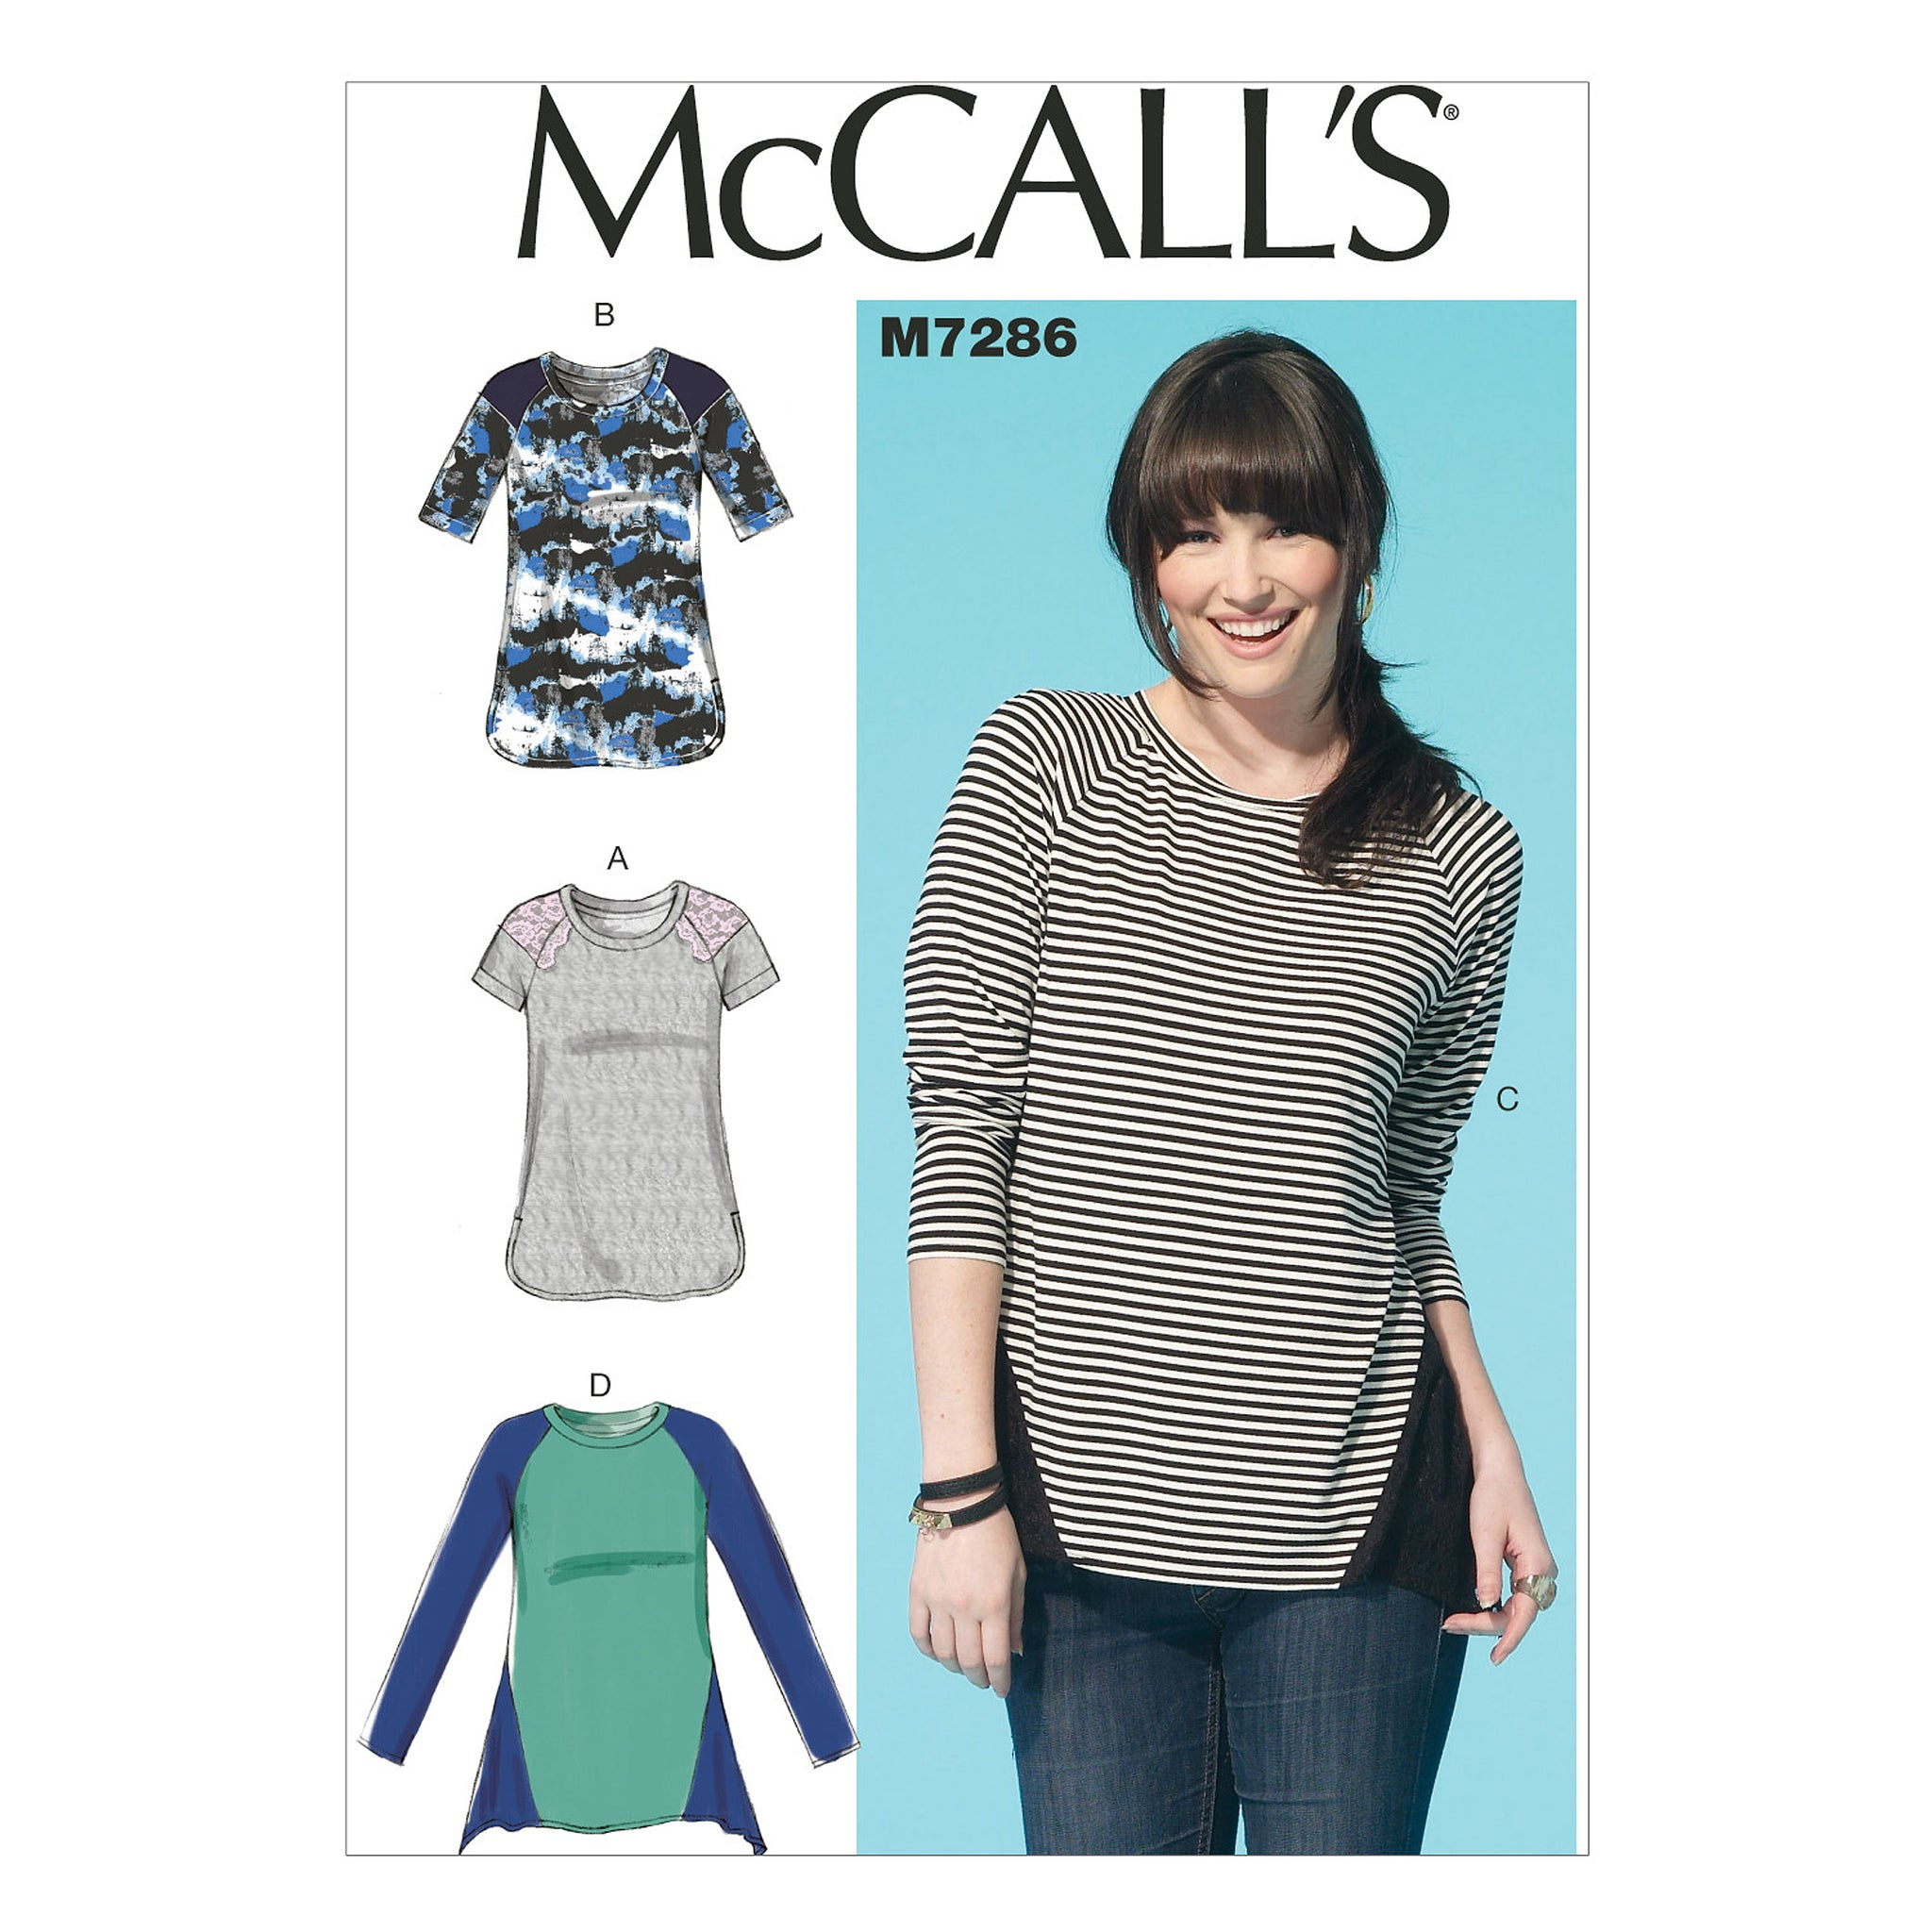 McCall's M7286ZZ0 Misses' Tops LRG-XLG-XXL